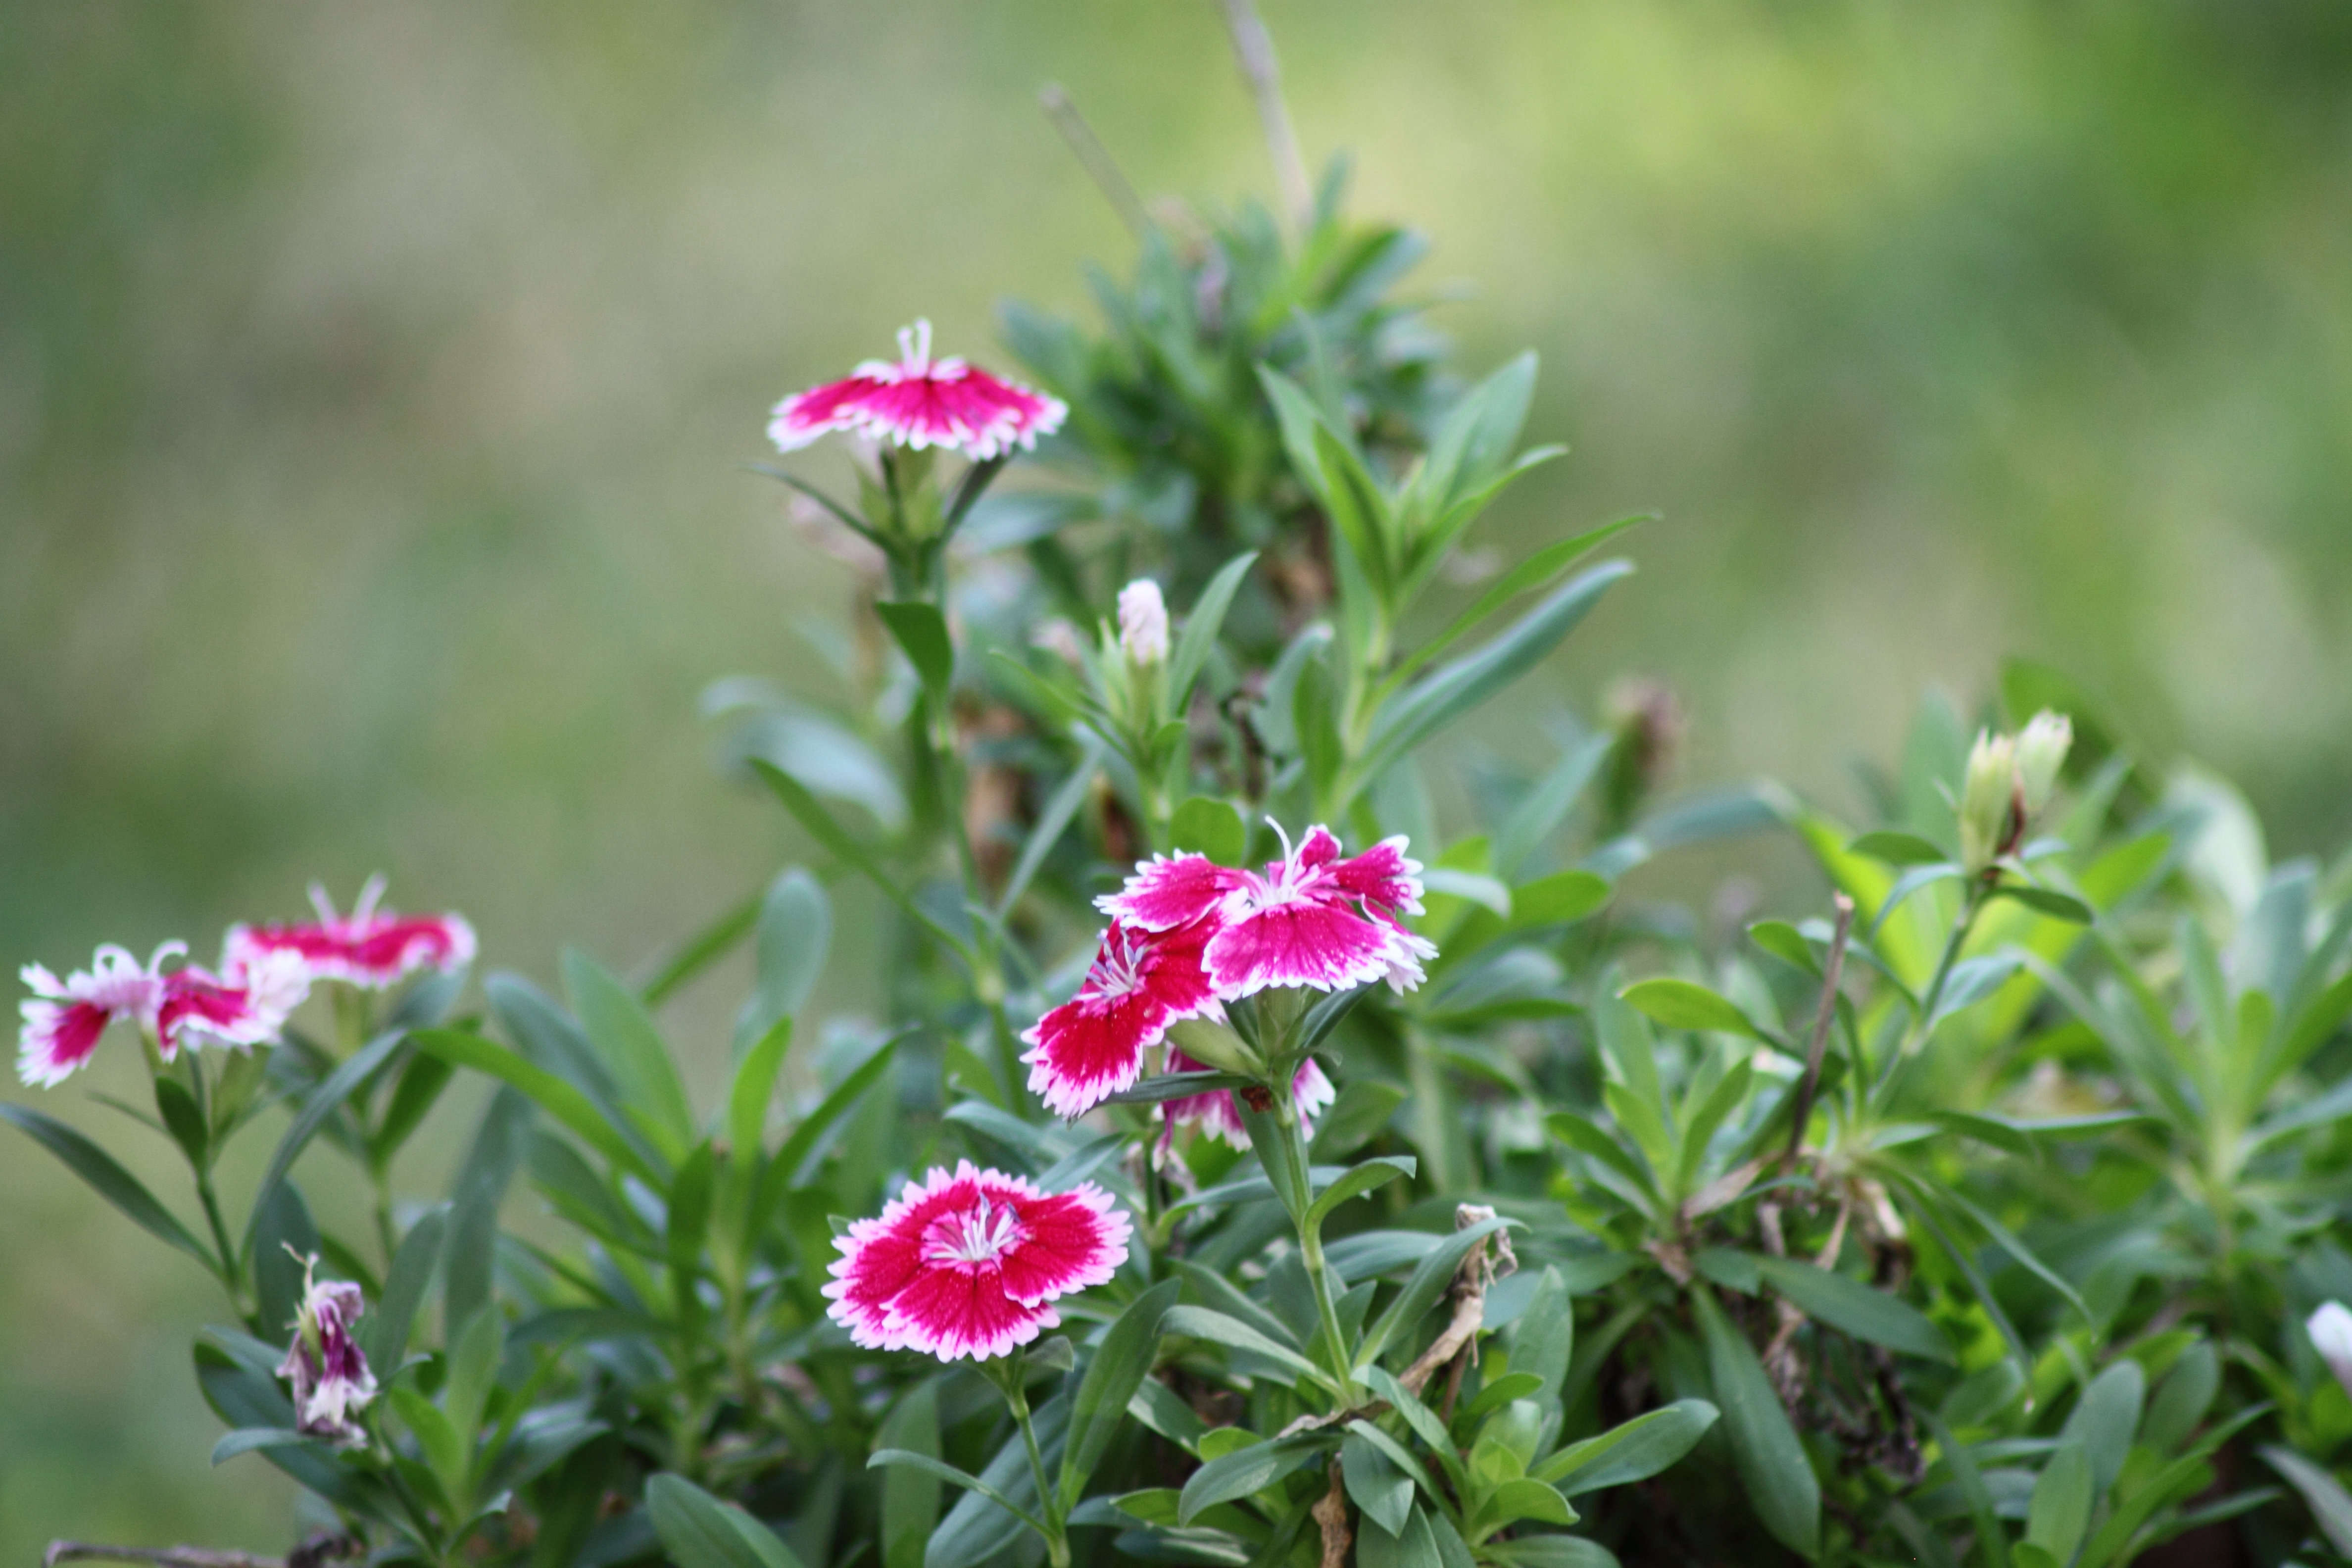 Dianthus A Guide To Growing Garden Pinks